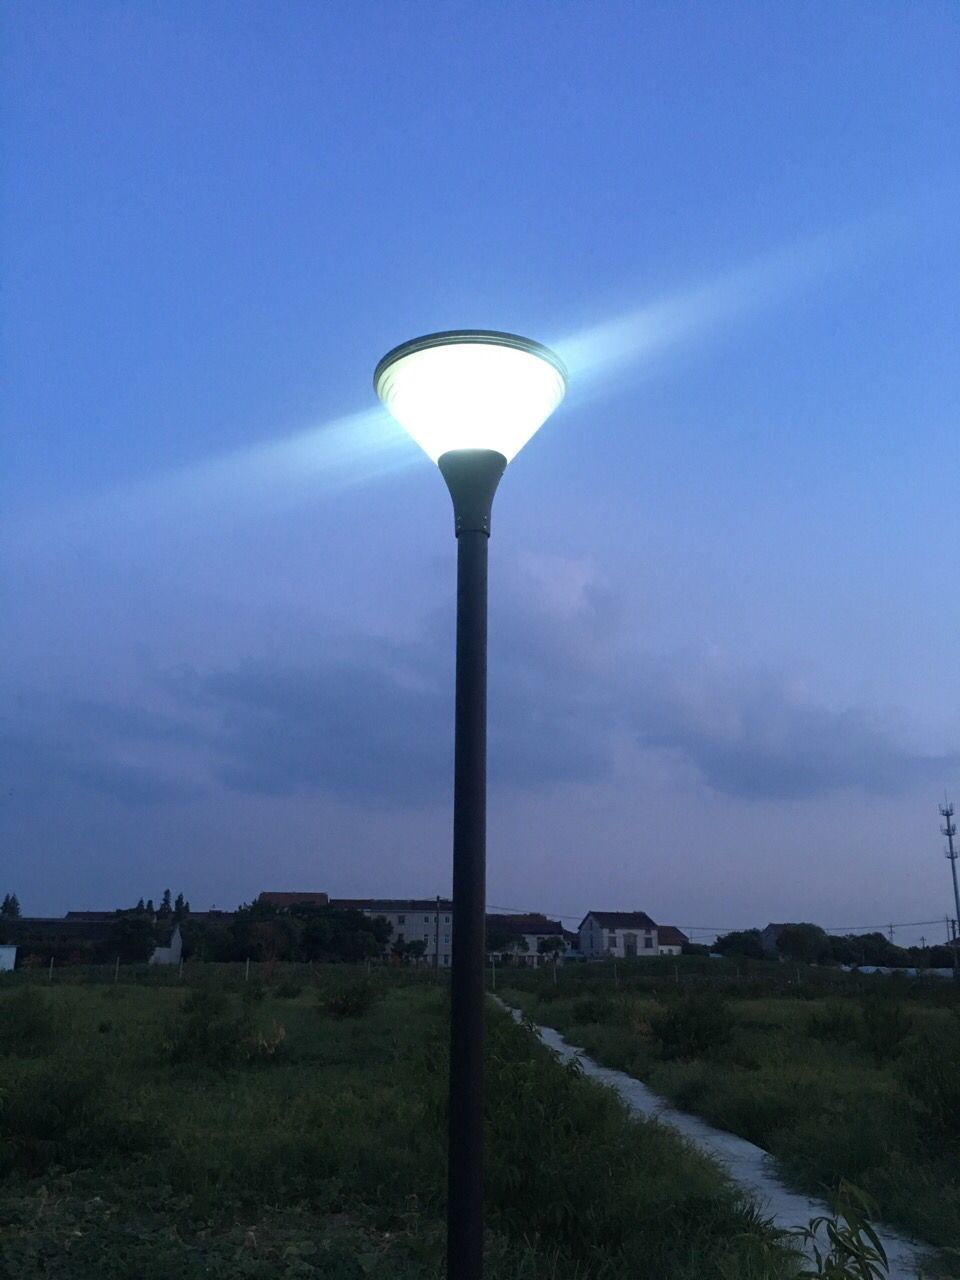 Solar Powered Garden Lights Green Energy Outdoor Solar Lights Solar Yard Lights With Ce Rohs China Solar Powered Garden Lights Solar Powered Outdoor Lights Made In China Com